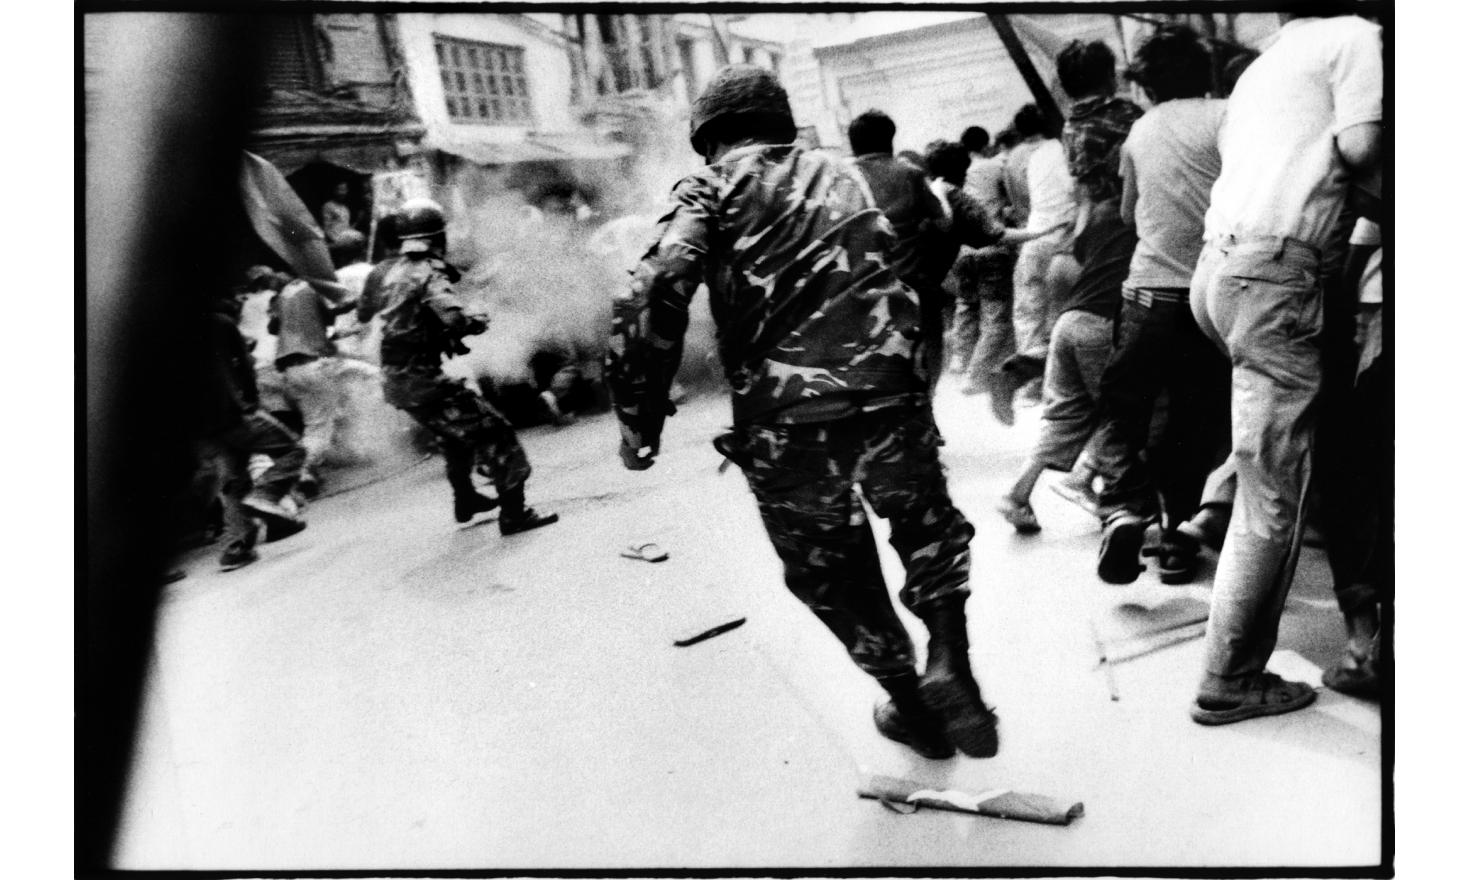 Riot police is charging and firing tear gas over protestors in the narrow streets of the center Kathmandu: Asan chow 22d of April 2006